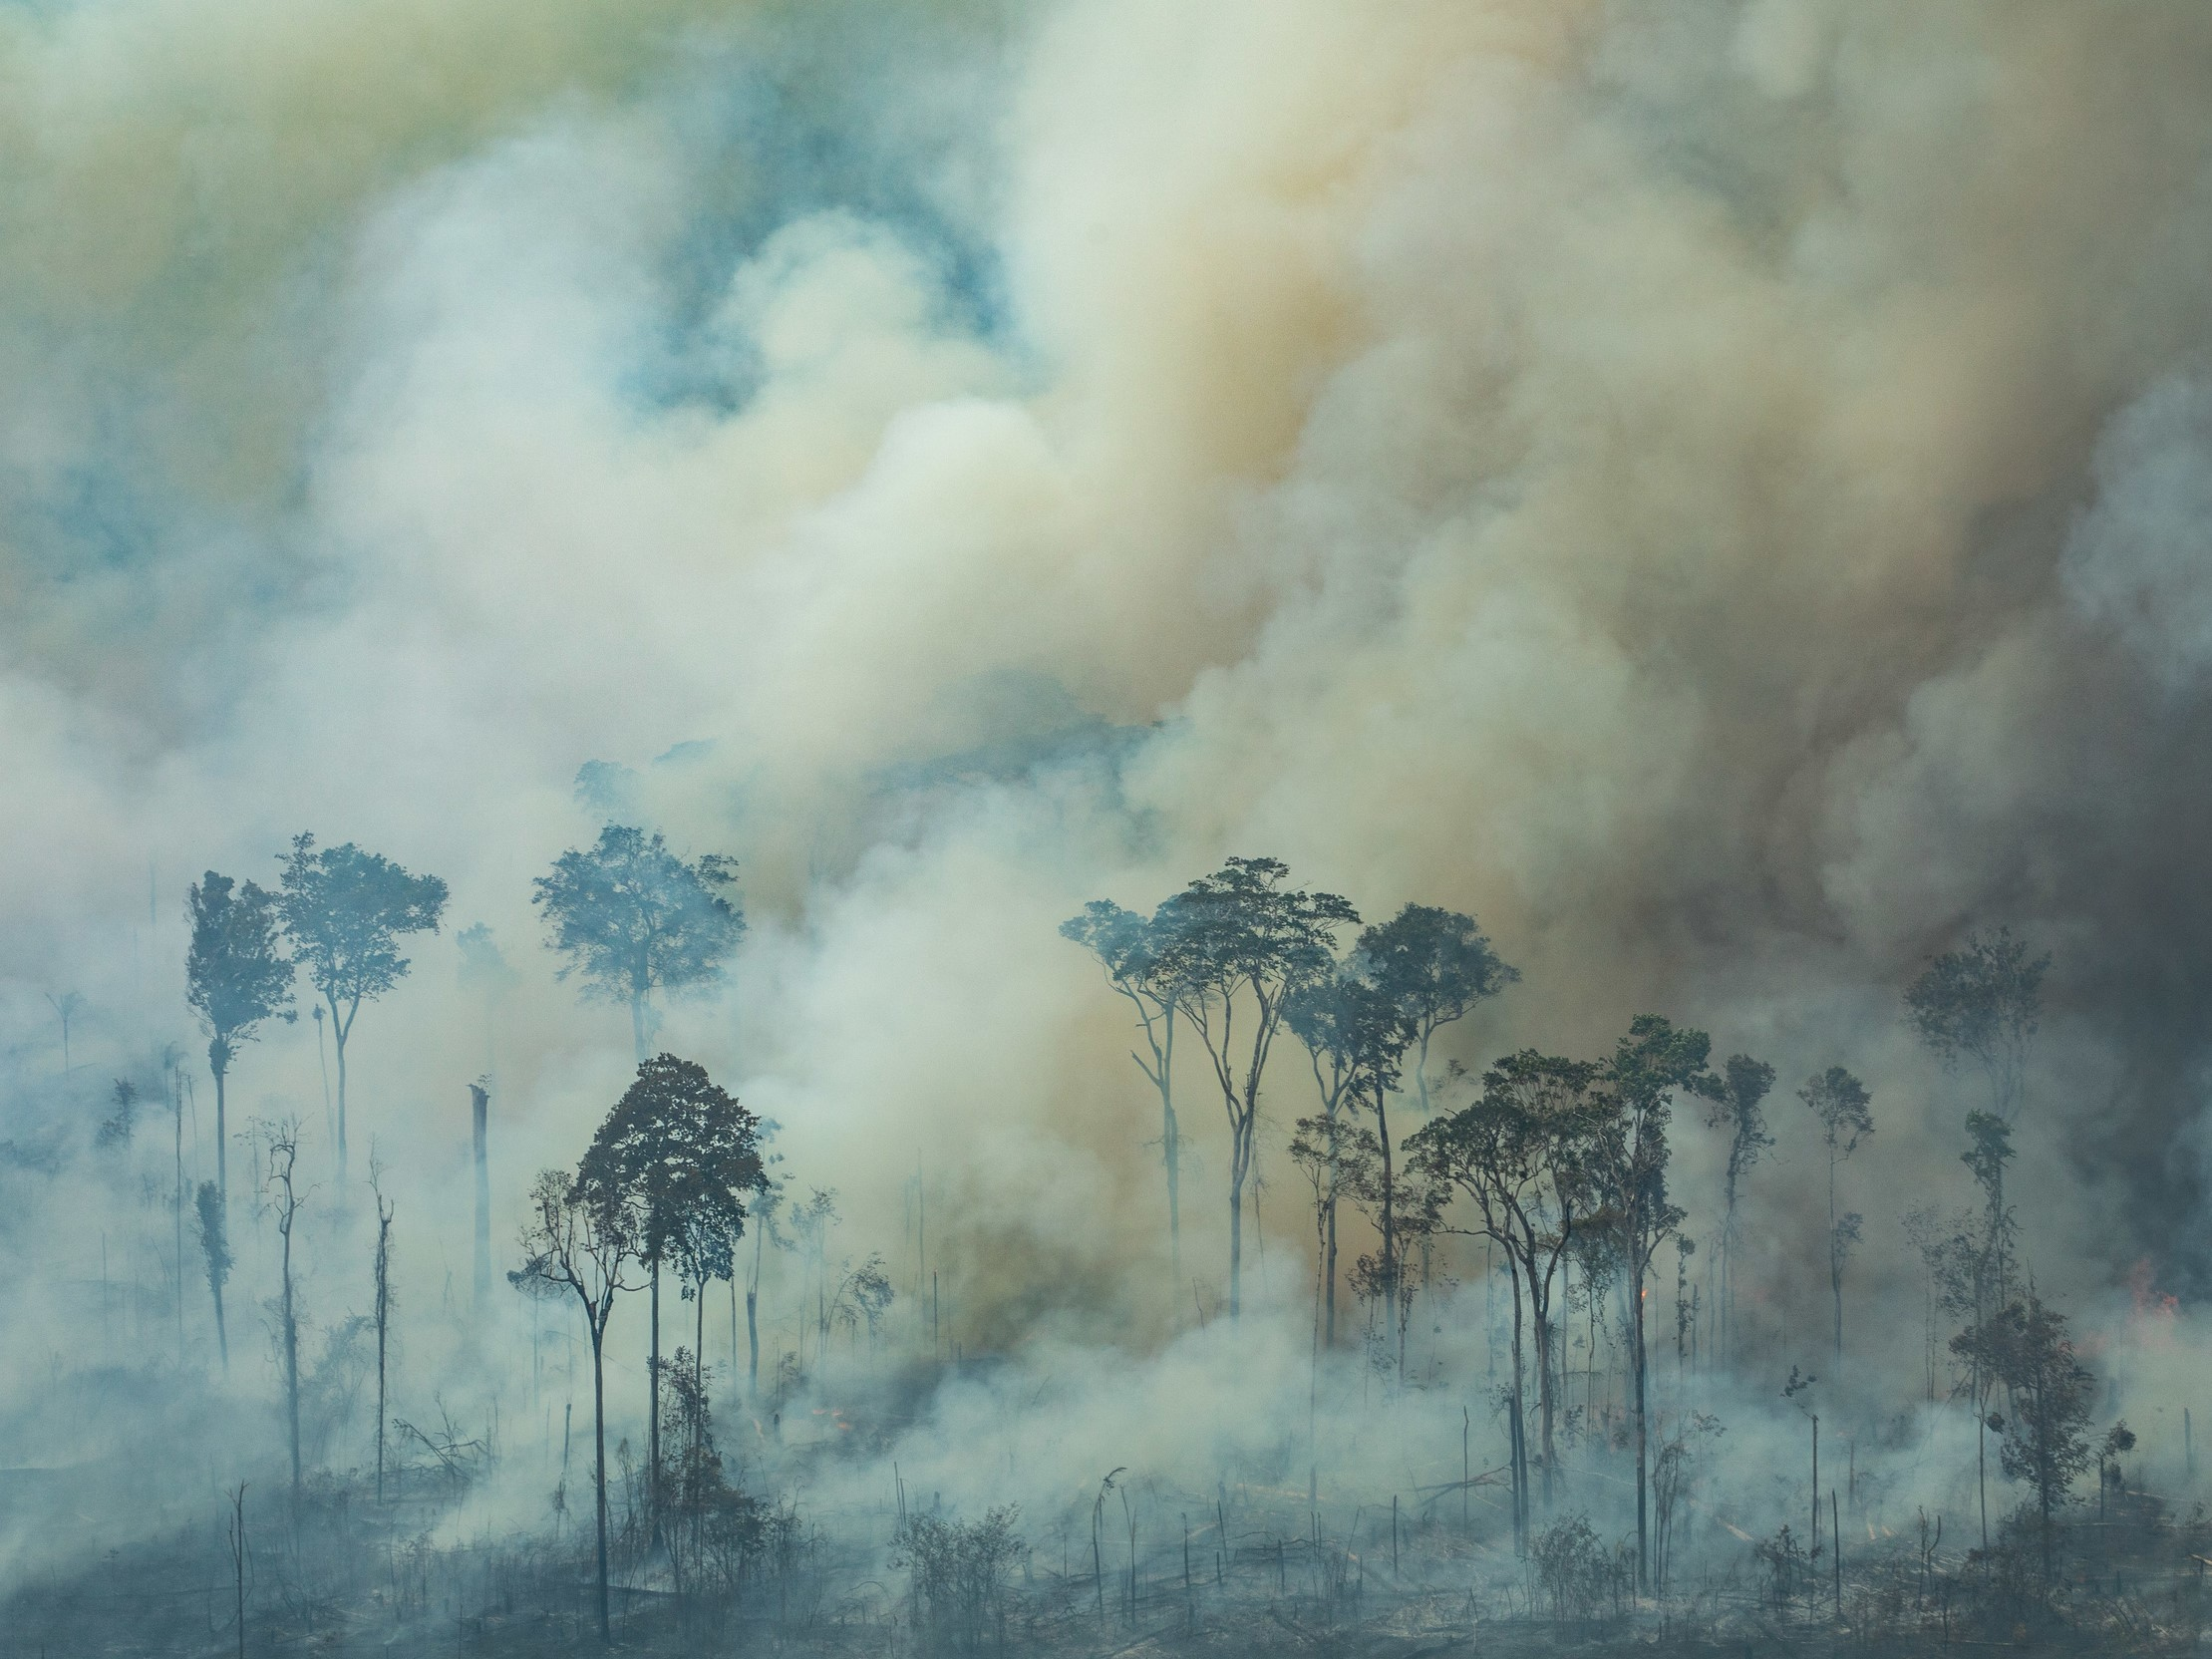 Have you heard the Amazon is on fire? The power of social media in awareness raising